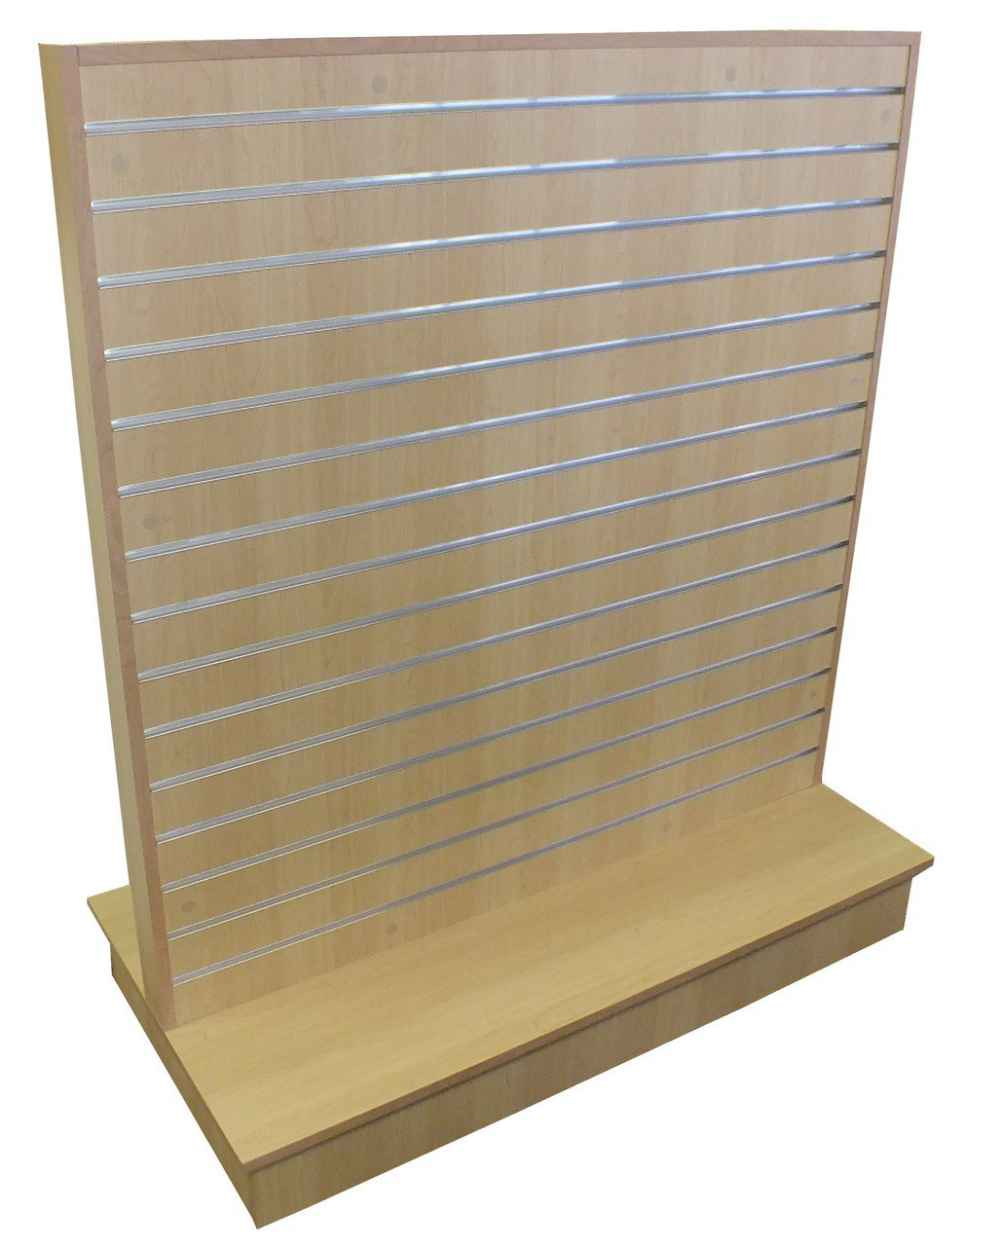 Large Slatwall 2 Way with Metal Inserts